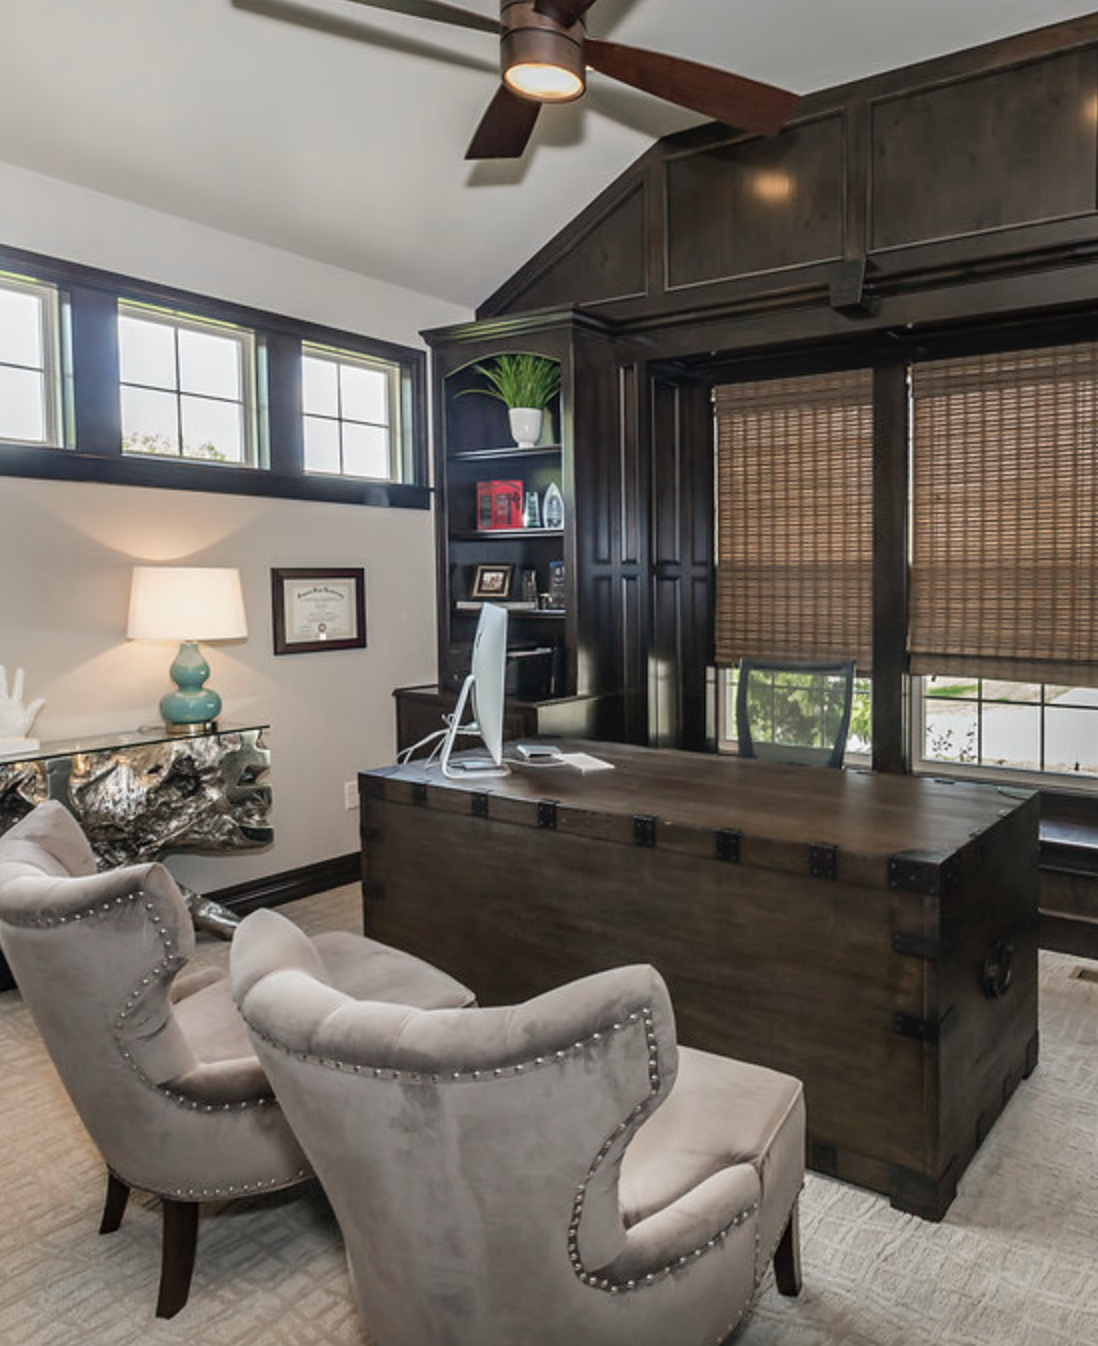 Our Carter Ii Floor Plan Is A Beautiful 1 1 2 Story Featuring Hardwood Floors In The Entry Kitchen Dini Bathroom Designs Images Hearth Room Floor Plan Design